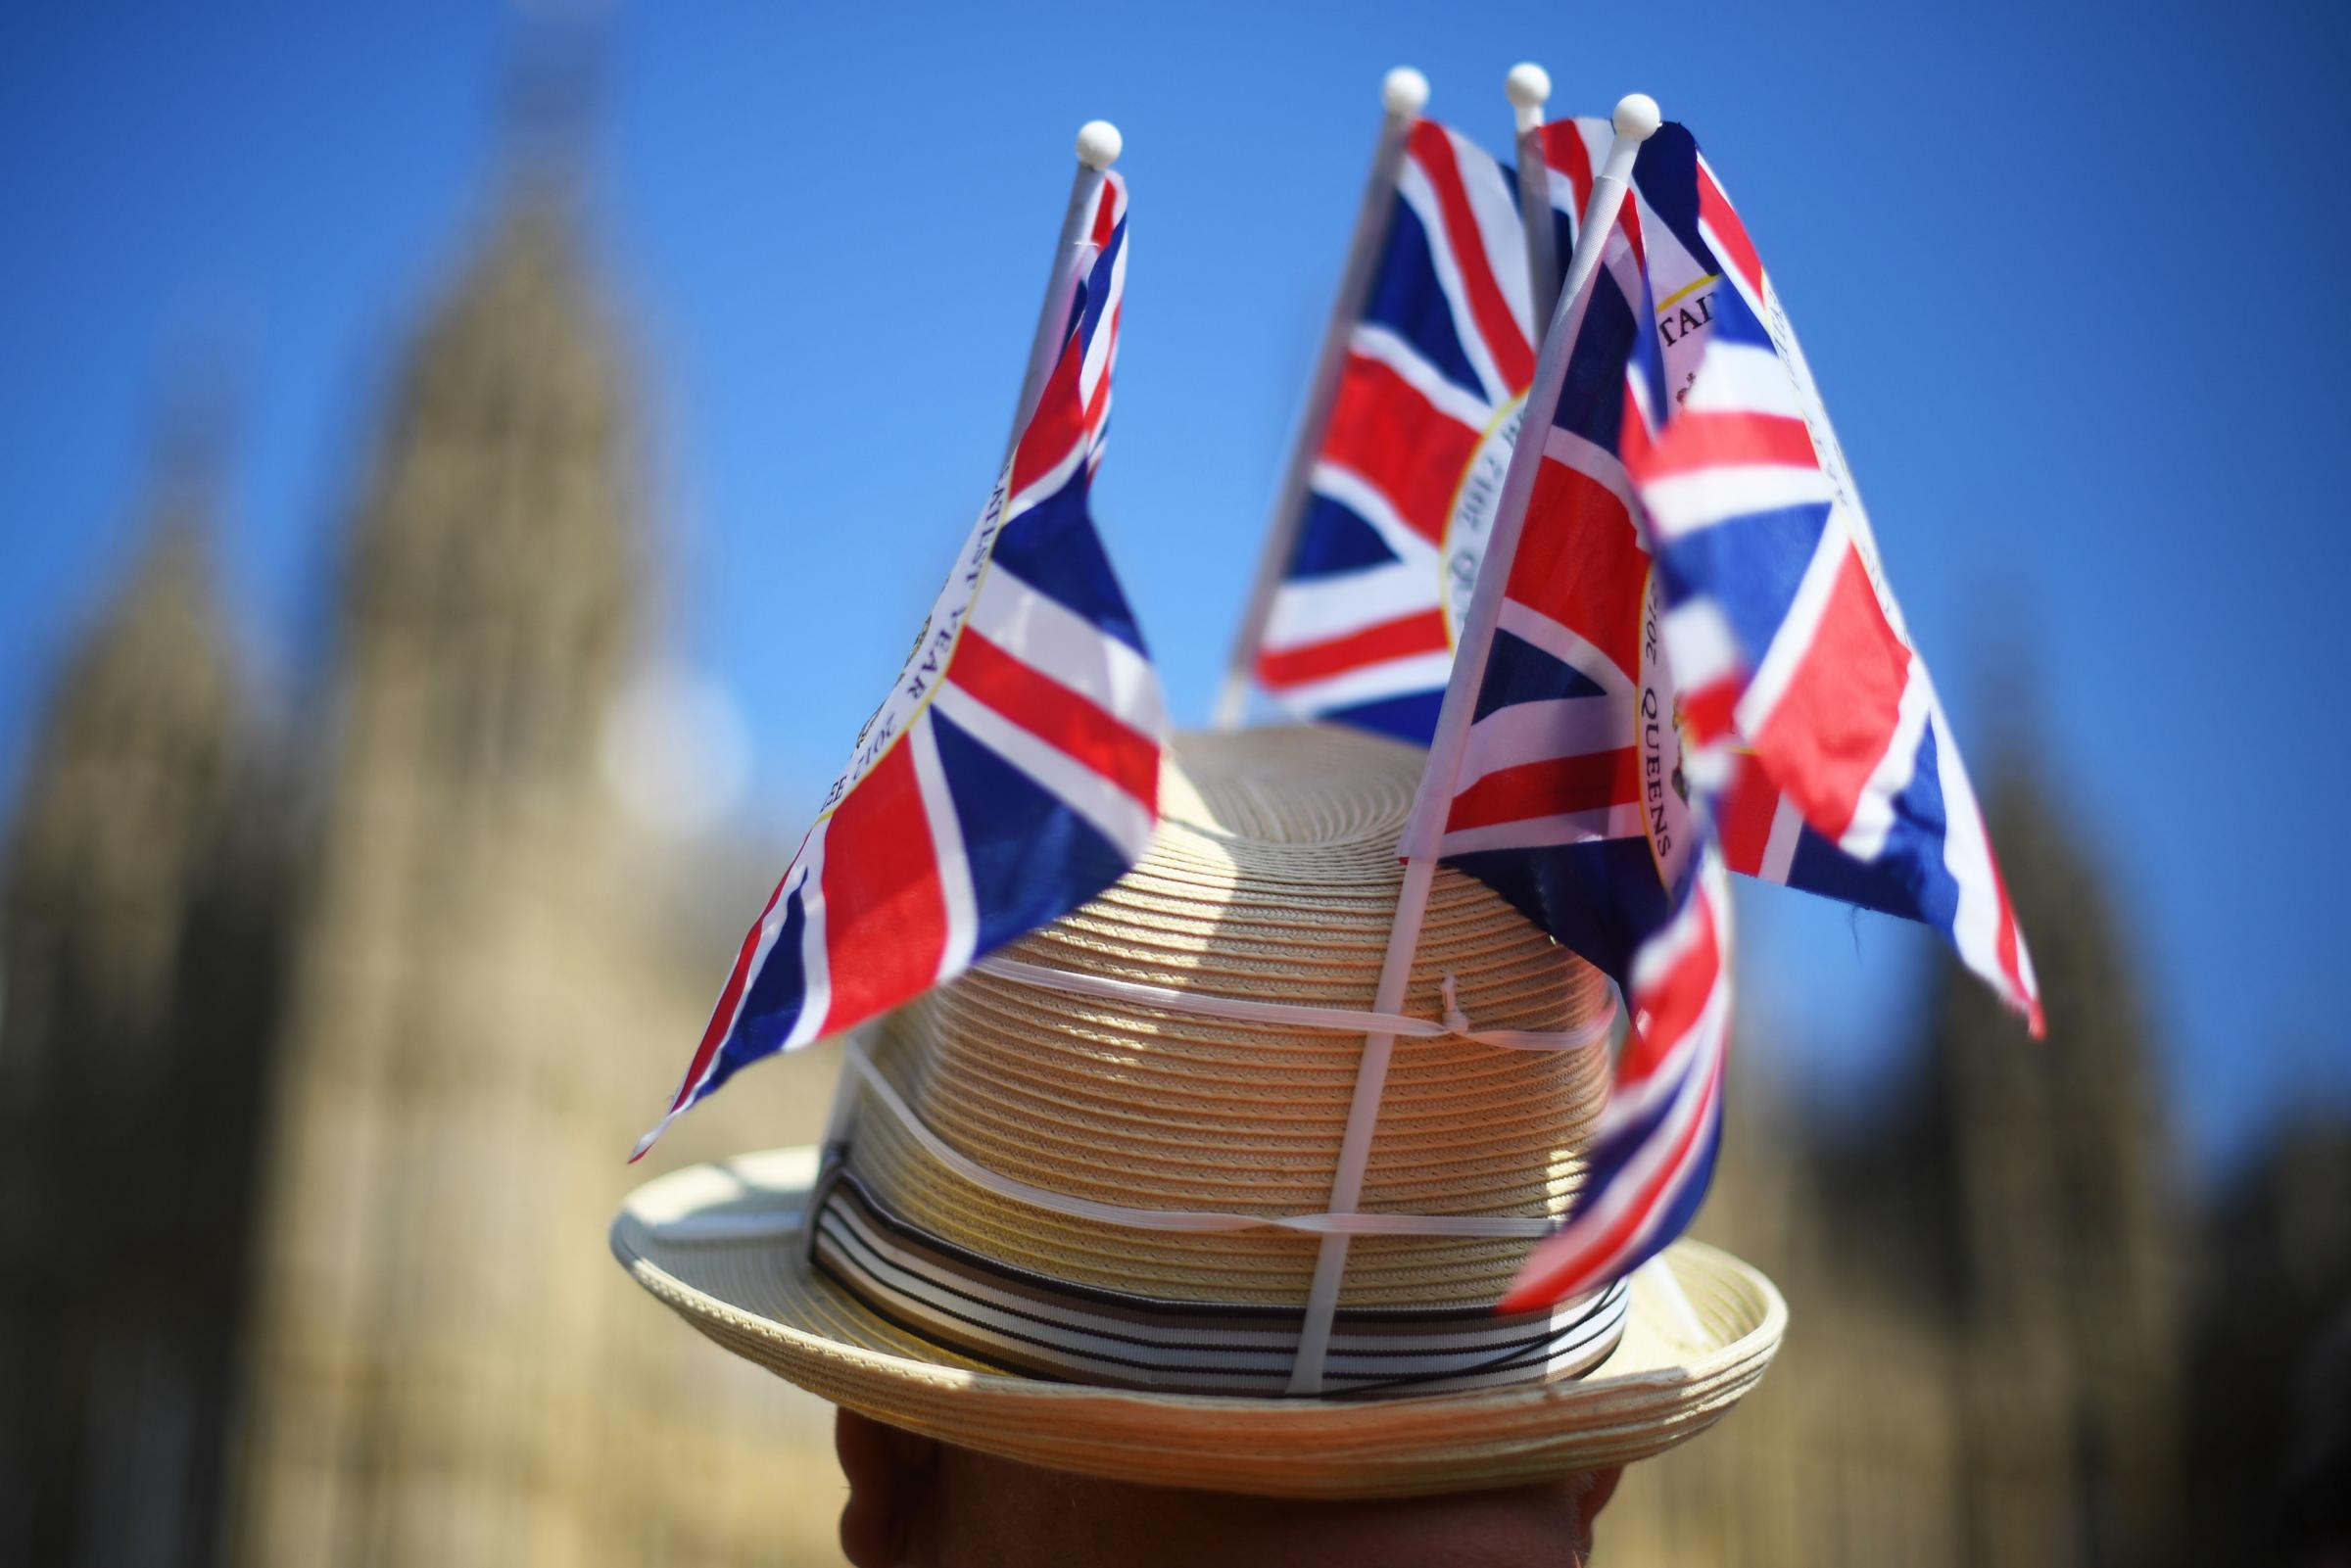 A protester wearing a hat adorned in Union flags outside Westminster, London, as MPs are expected to consider and vote on a Government motion on the EU withdrawal on Friday evening. PRESS ASSOCIATION Photo. Picture date: Friday March 29, 2019. See PA sto